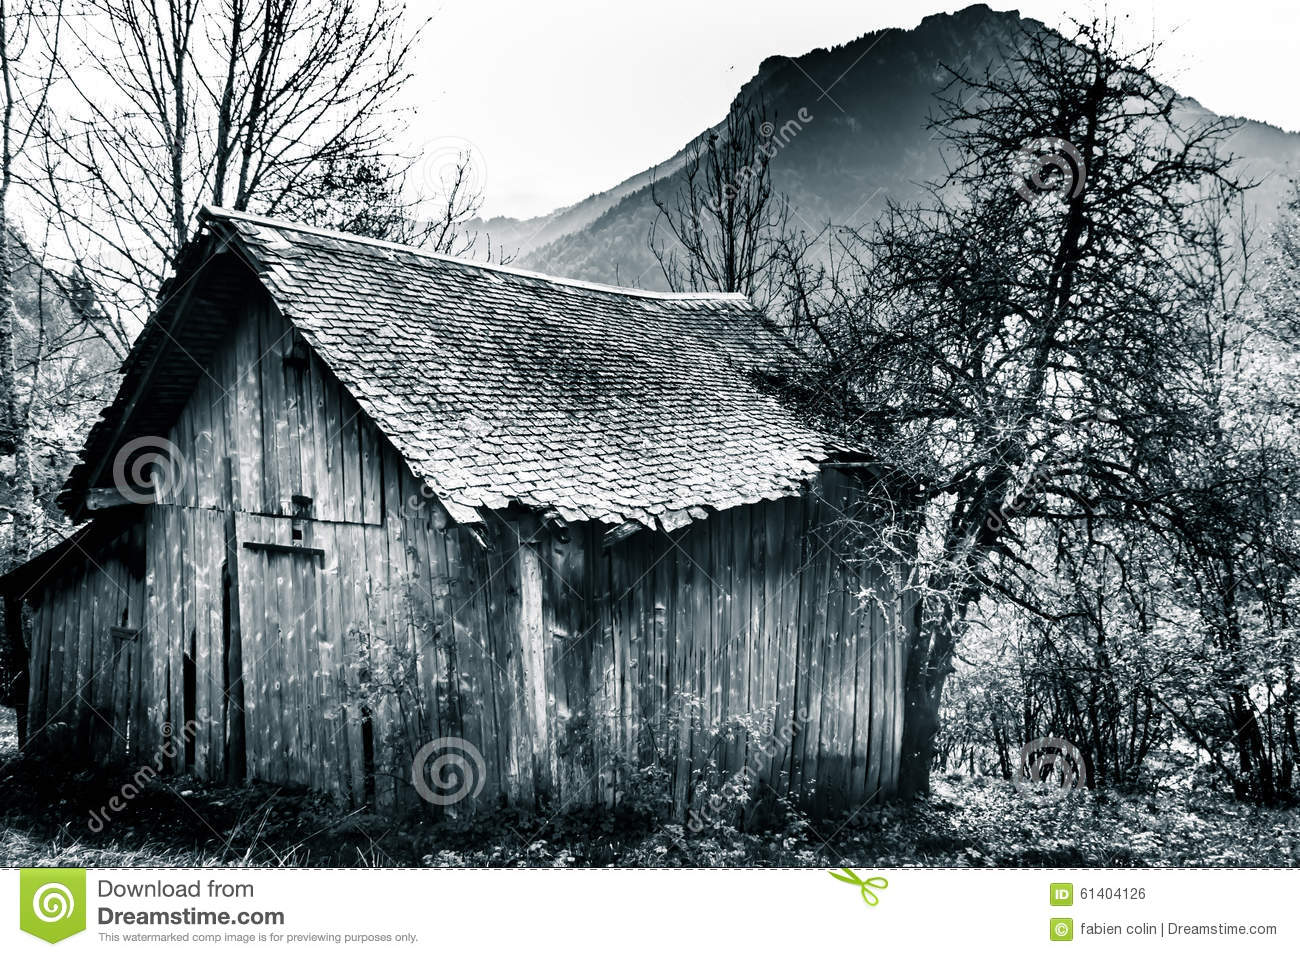 Cottage in the mountains stock photo image 61404126 for Cottage in the mountains